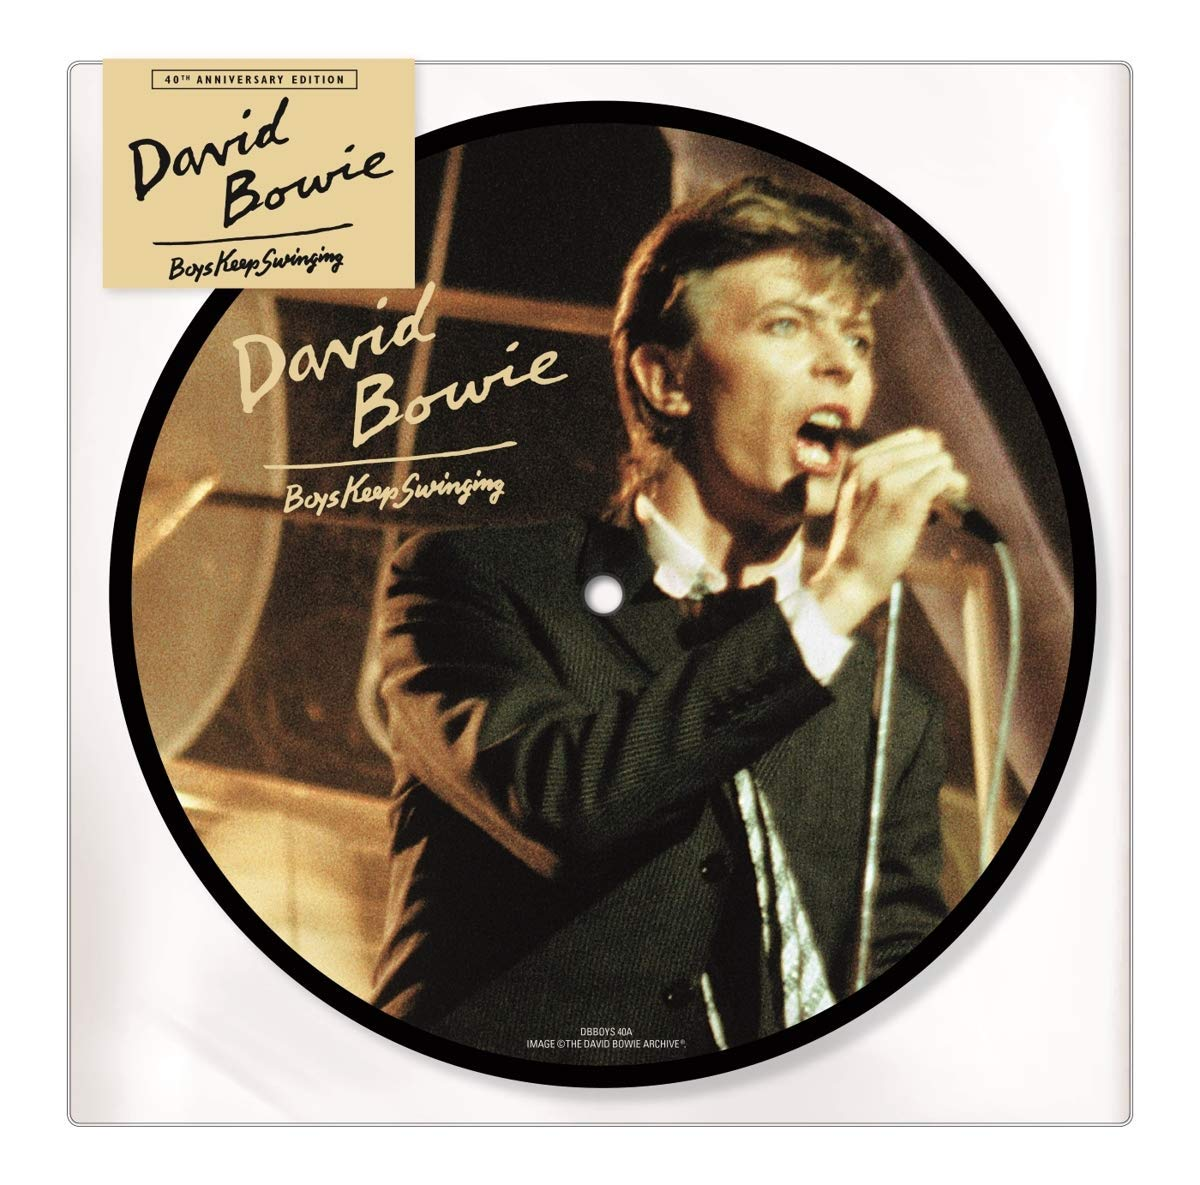 David Bowie - Boys Keep Swinging: 40th Anniversary [Limited Edition Picture Disc Vinyl Single]